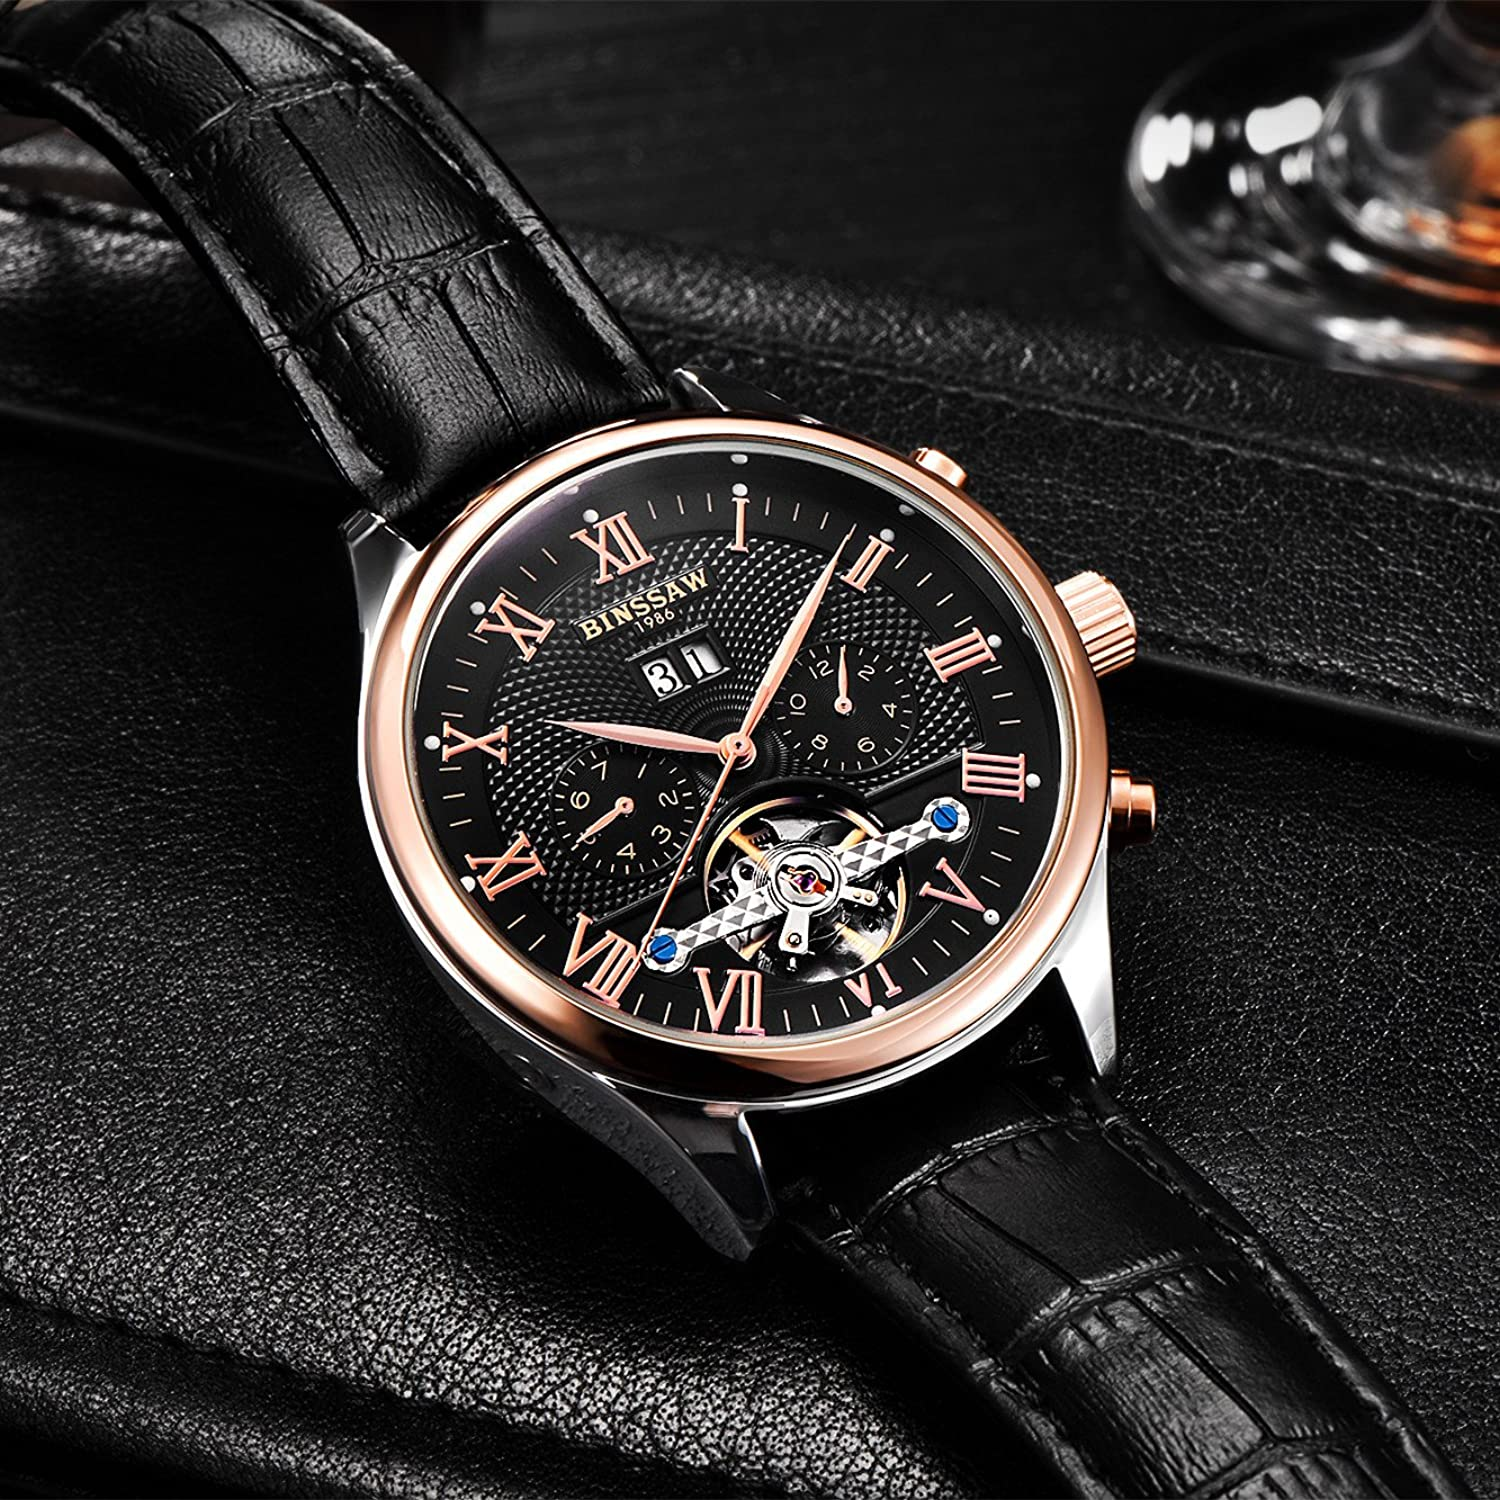 leather jl binssaw calendar waterproof tourbillon watch watches brand dp men business mechanical aatos automatic sports com amazon